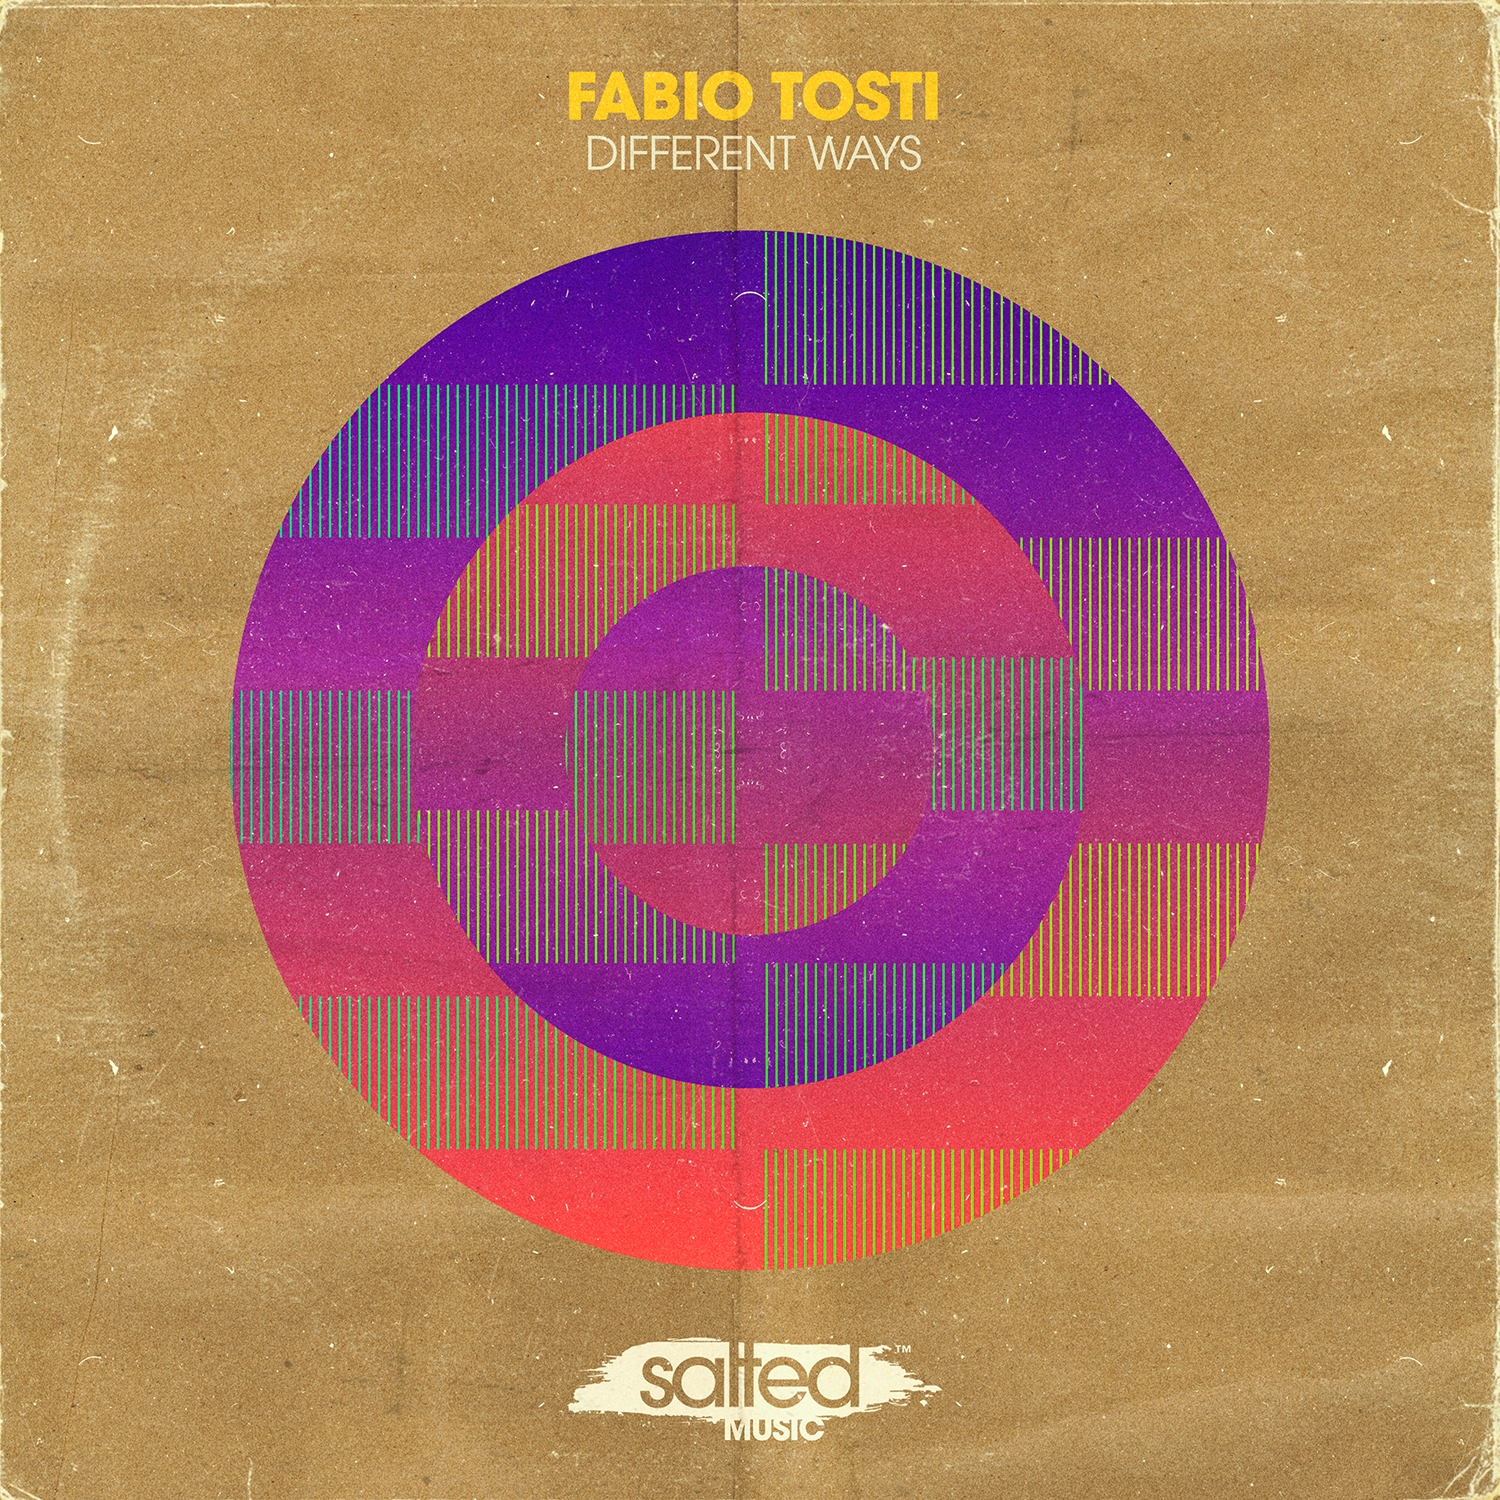 fabio-tosti-different-ways-ep